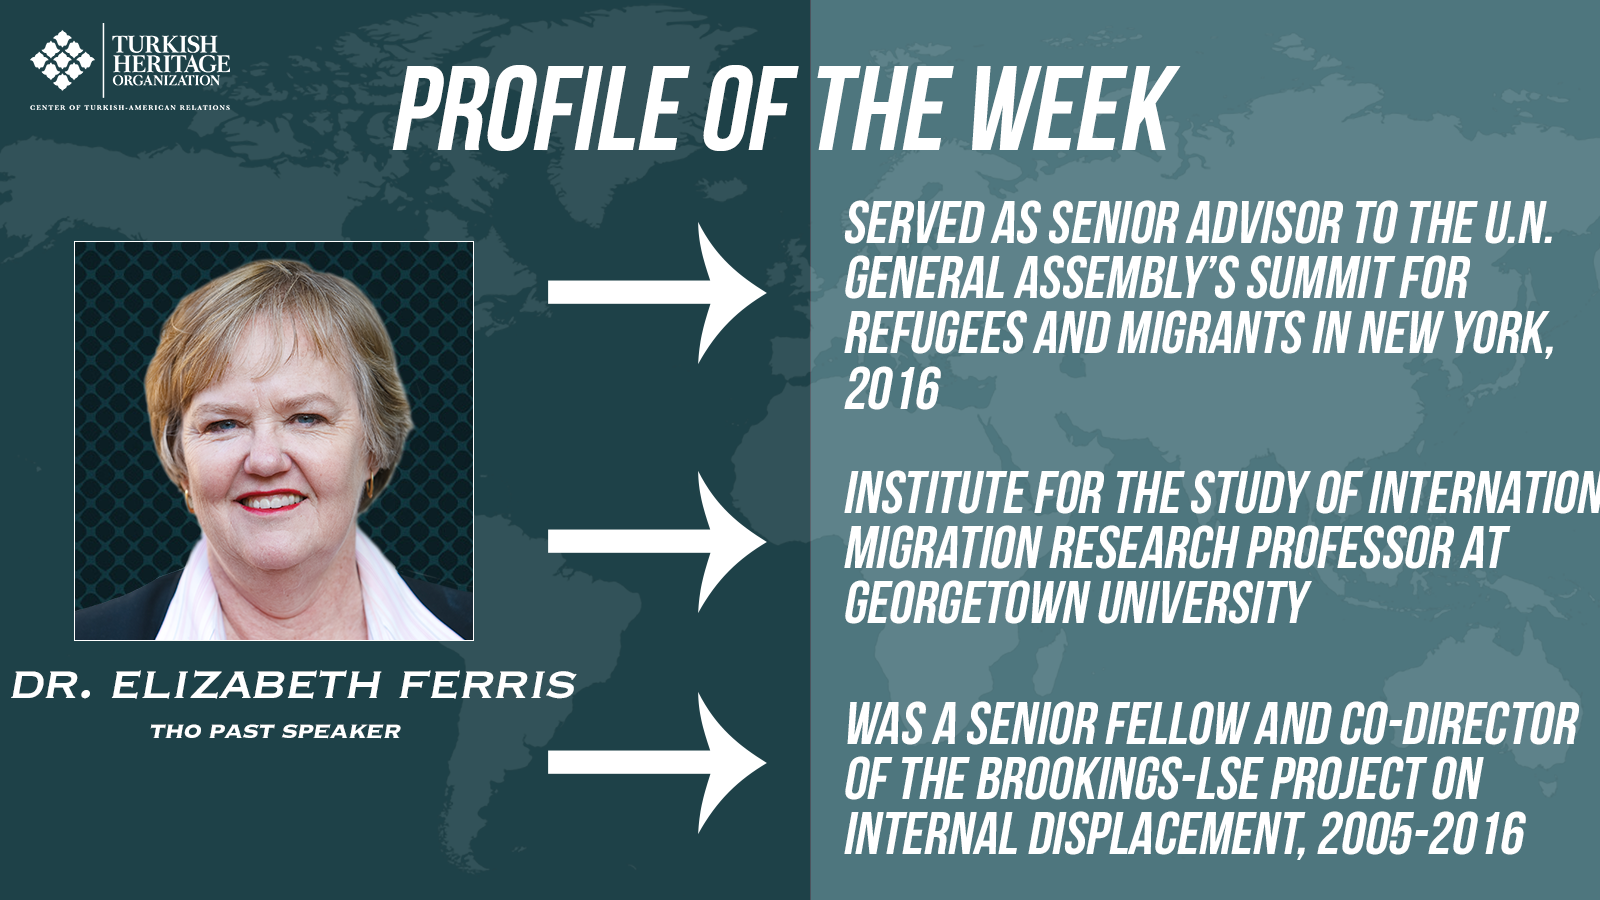 Dr. Elizabeth Ferris is a research professor at Georgetown University's Institute for the Study of International Migration and completed a 9 year tenure as a senior fellow at the Brookings Institute.